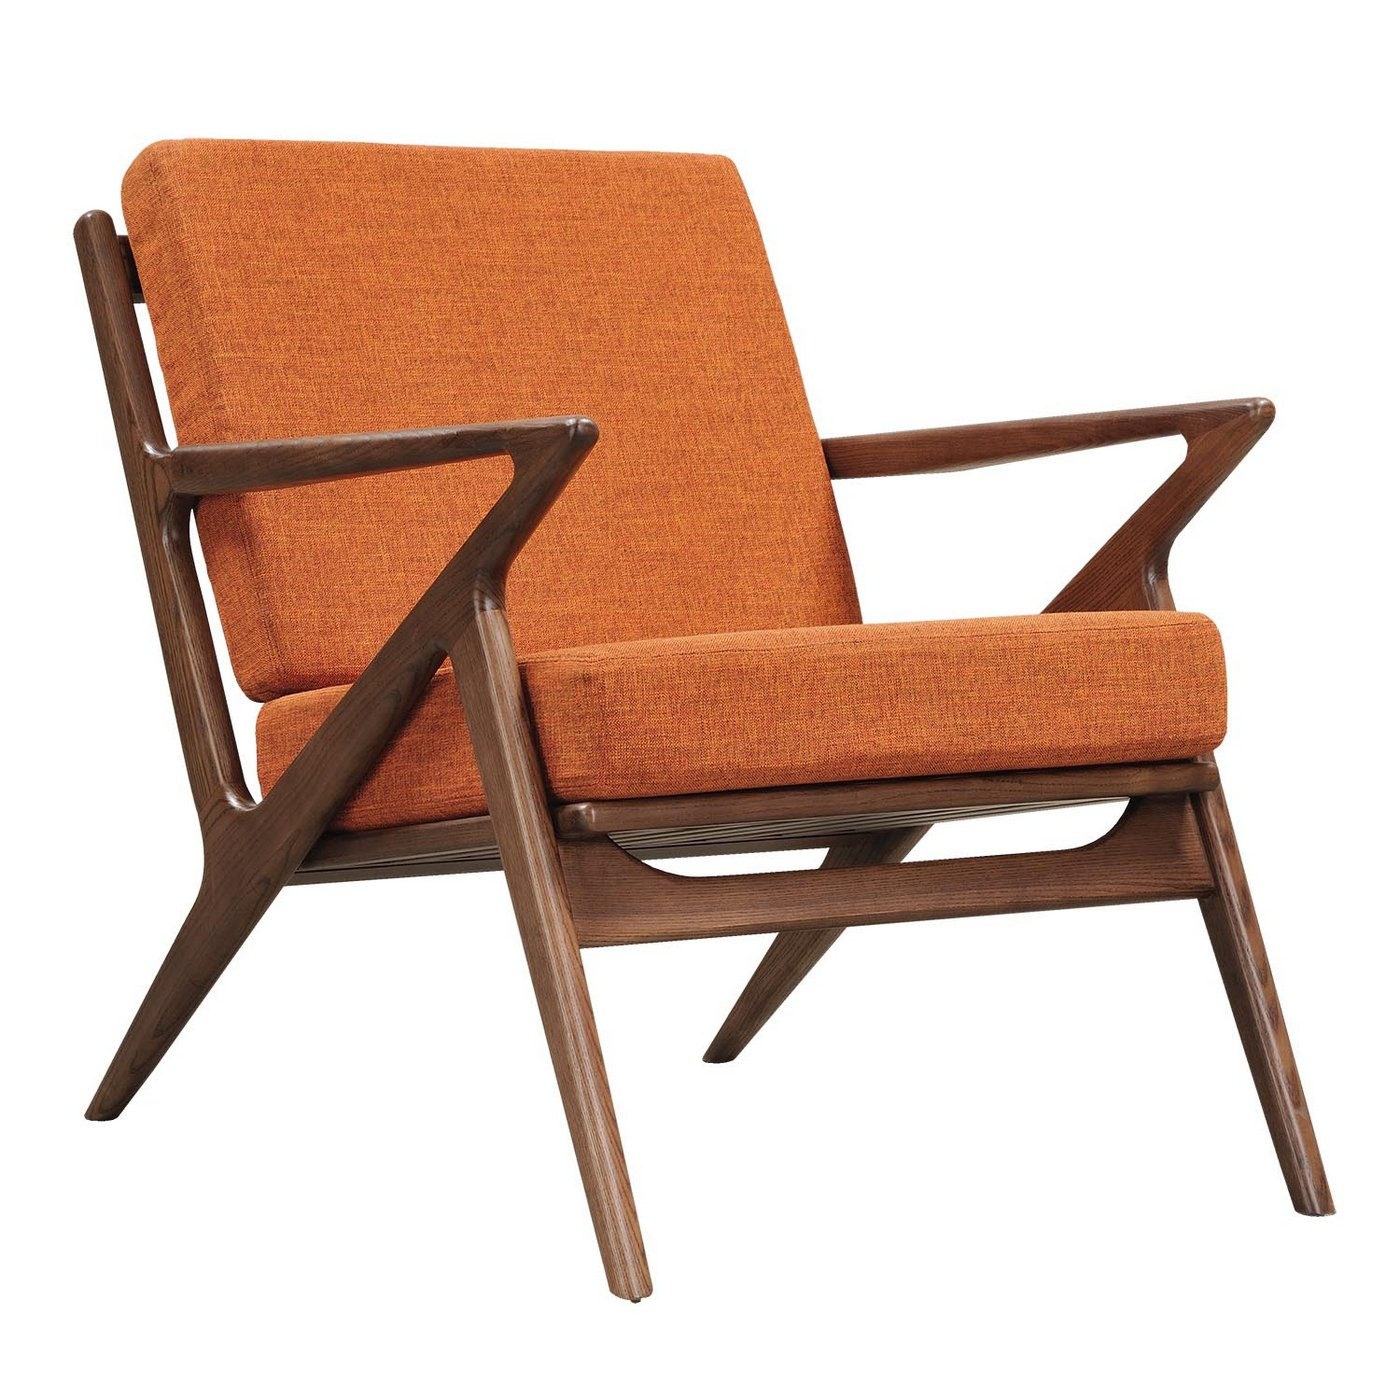 Mid Century Chair: Zain Mid Century Modern Orange Fabric Chair With Wooden